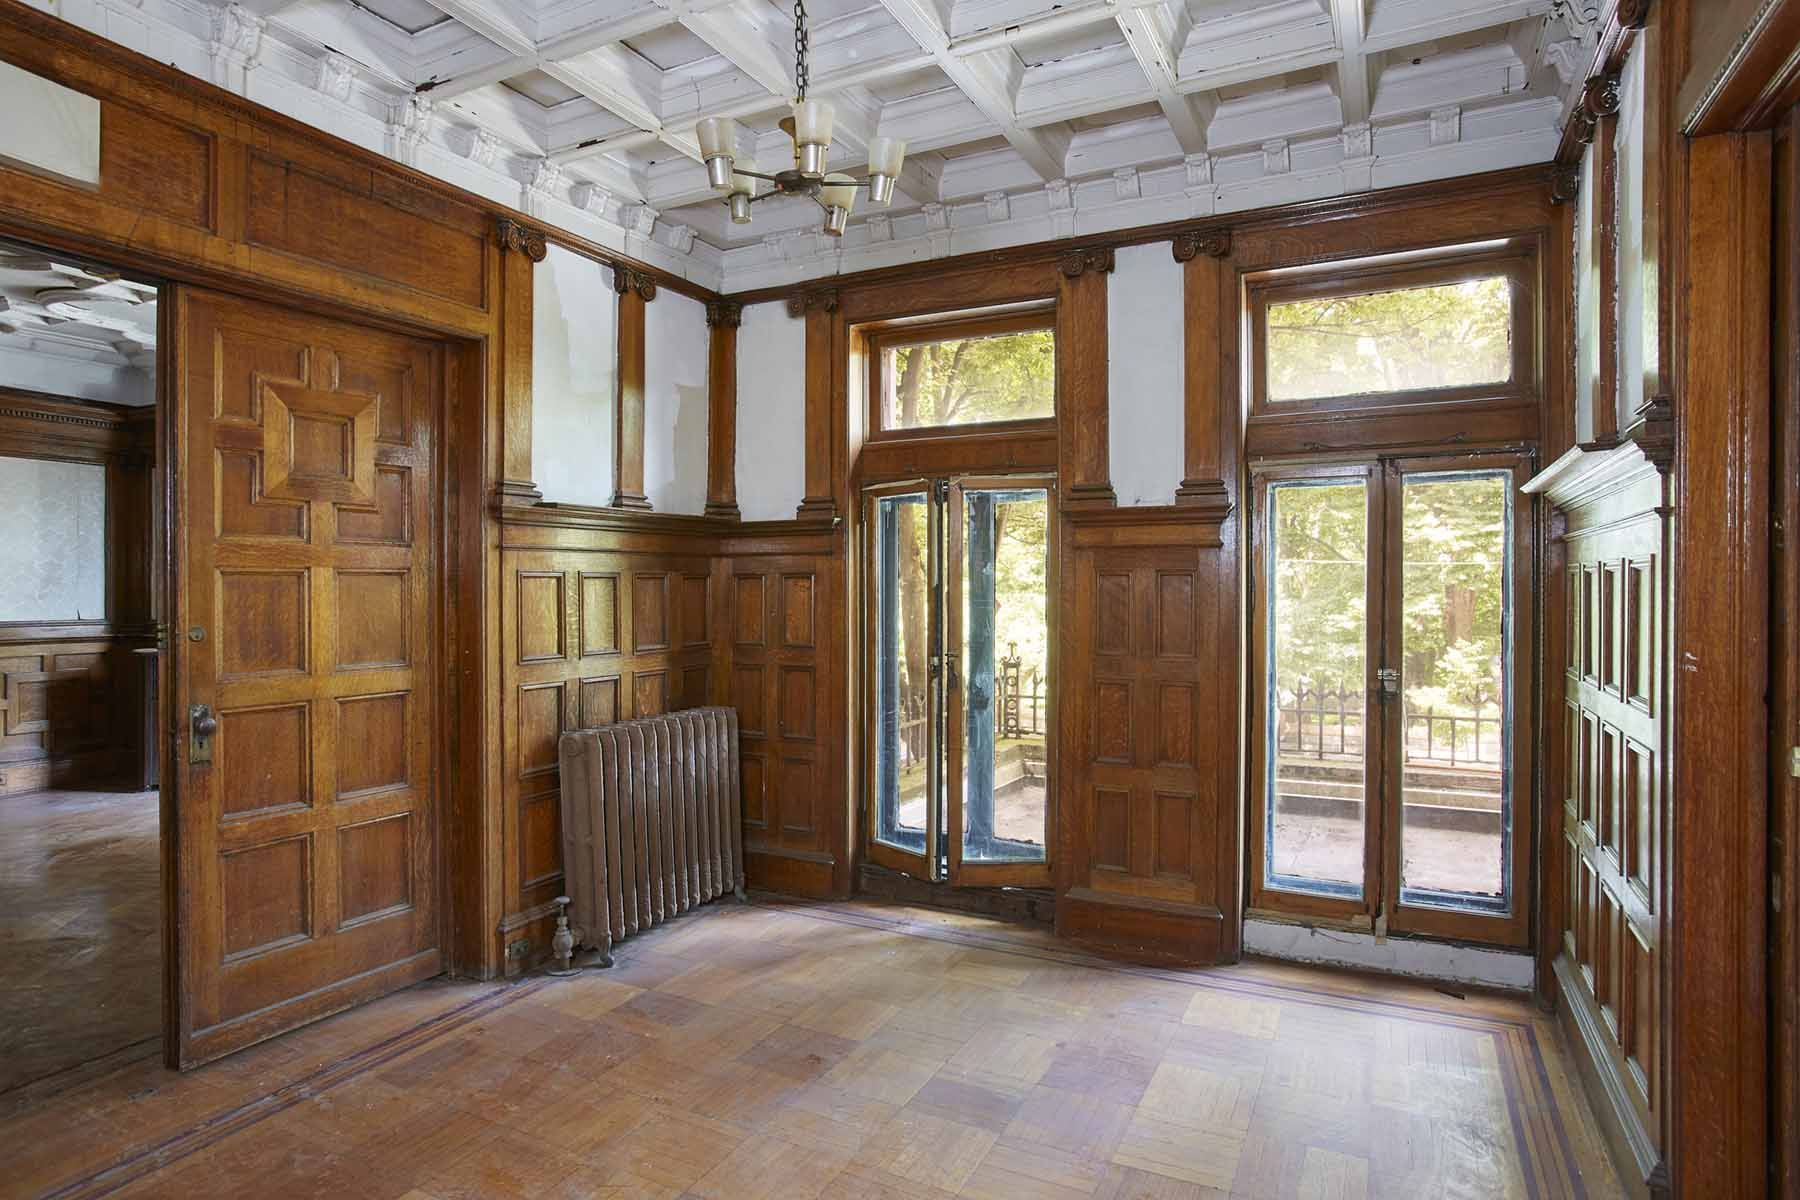 See Inside a Largely Untouched Renaissance Revival Mansion in New York City